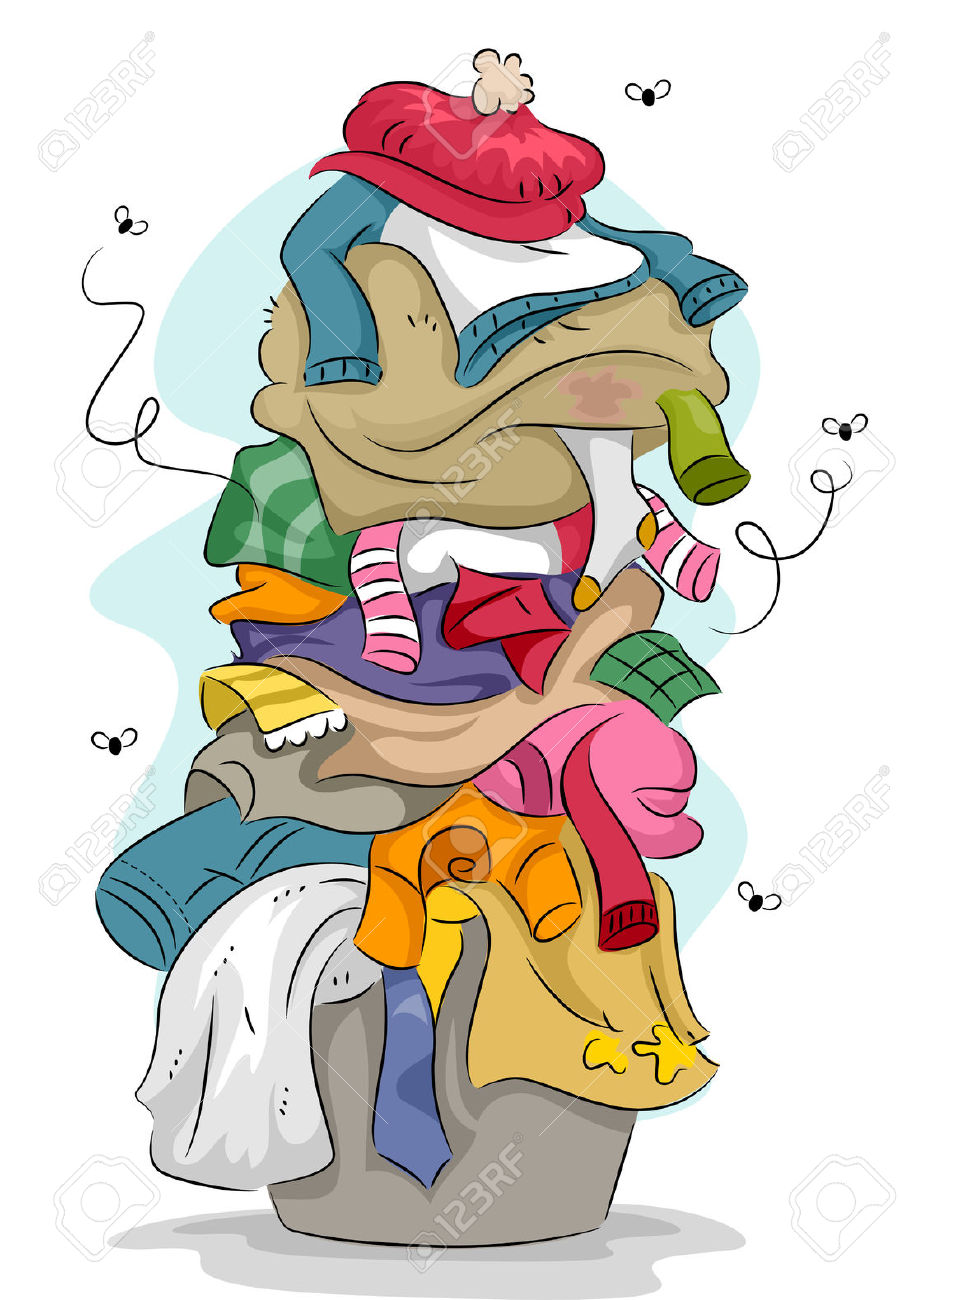 Illustration Of A Pile Of Dirty And Stinky Laundry With Flies.